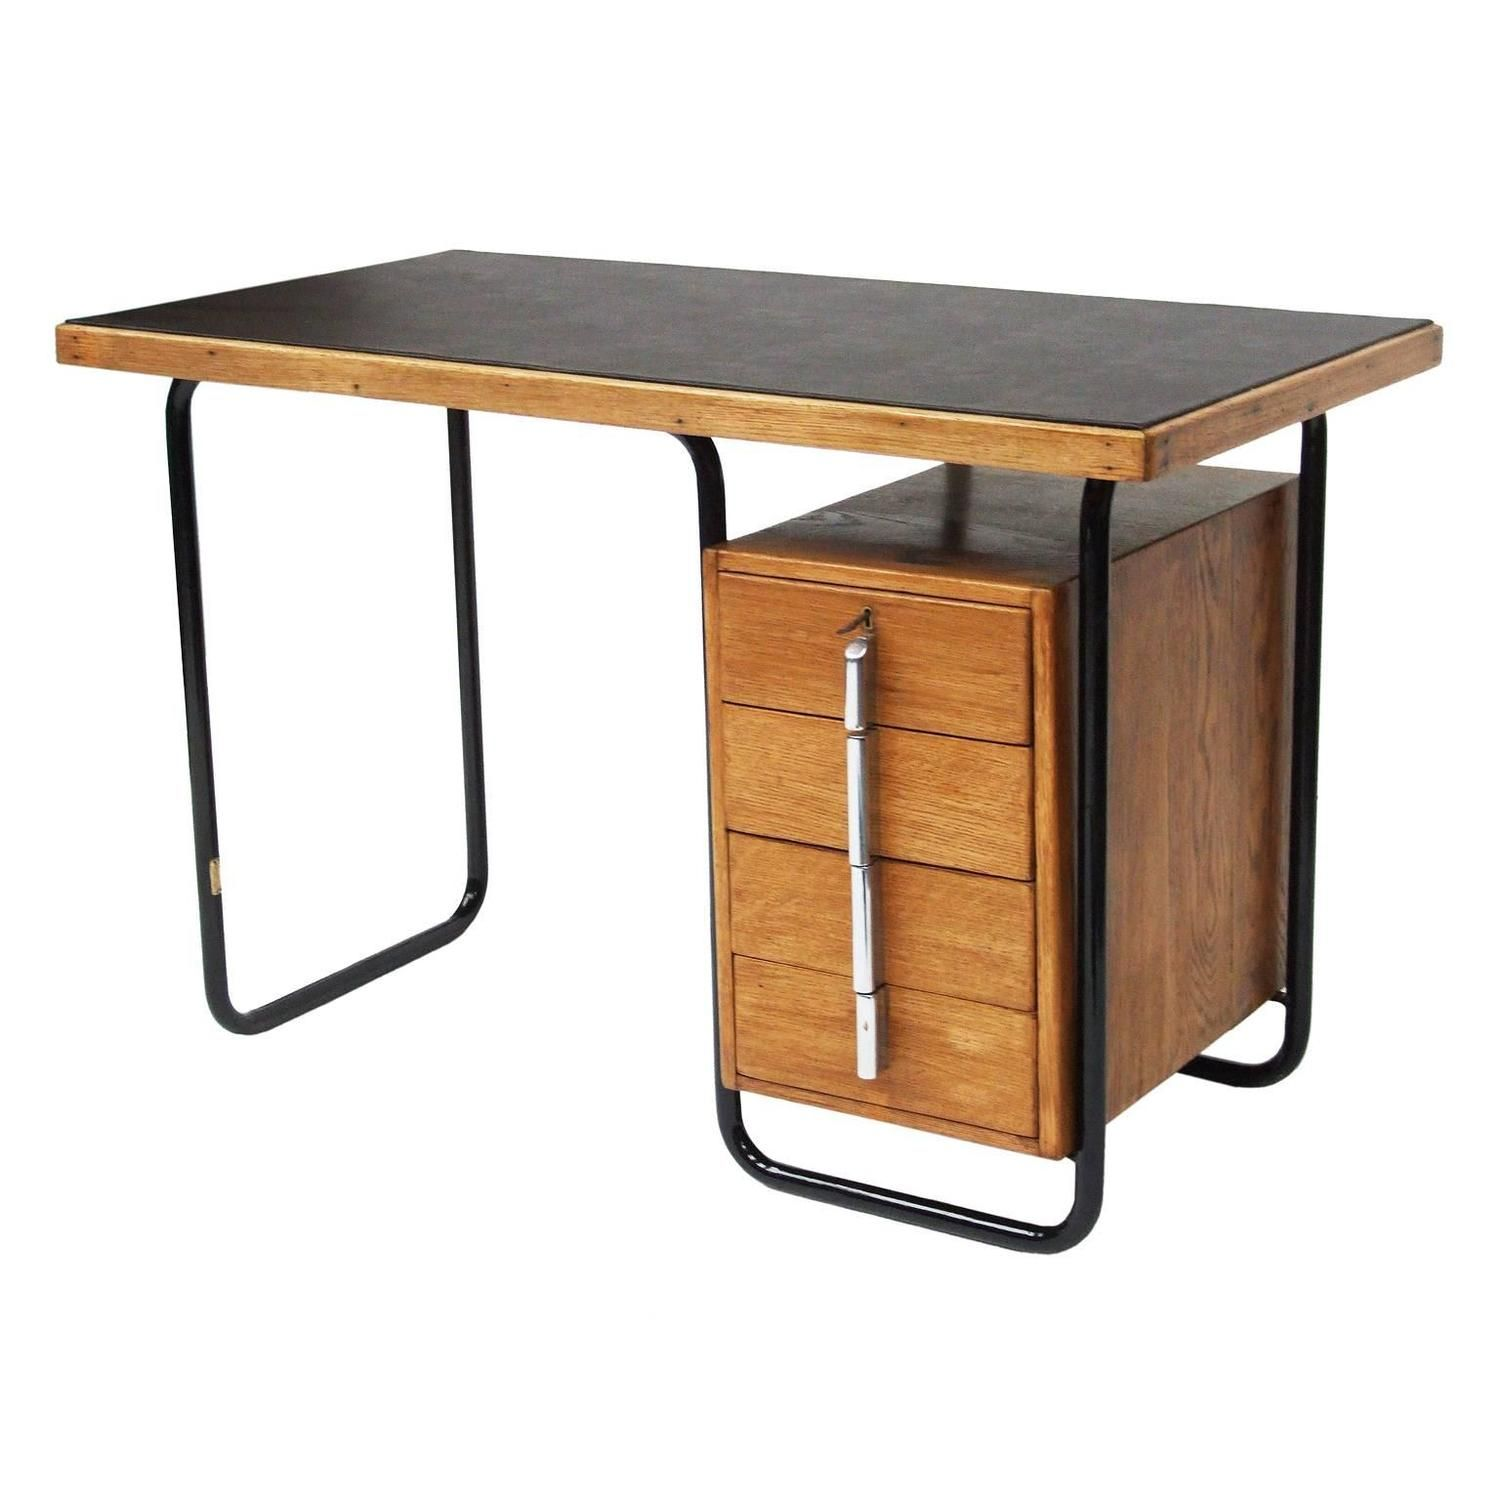 1930s Bauhaus Desk by Welles Coates for Kingfisher 3